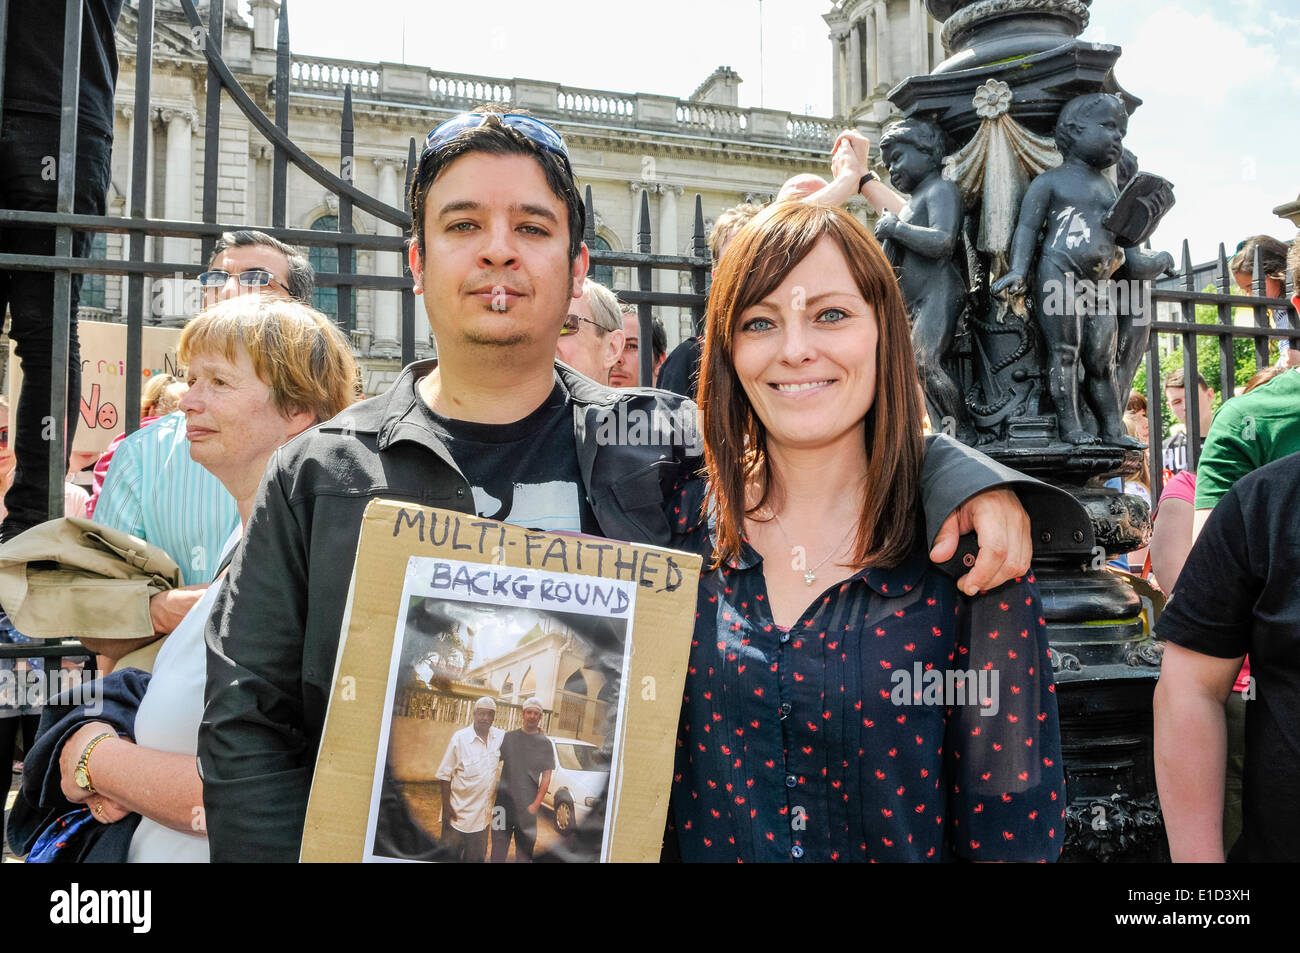 Belfast, Northern Ireland. 31 May 2014 - Nichola Mallon stands with thousands of people turned out for an anti-racism rally held in support of Anna Lo MLA.  Ms Lo had threatened to leave Northern Ireland because of the amount of racist attacks. Credit:  Stephen Barnes/Alamy Live News - Stock Image